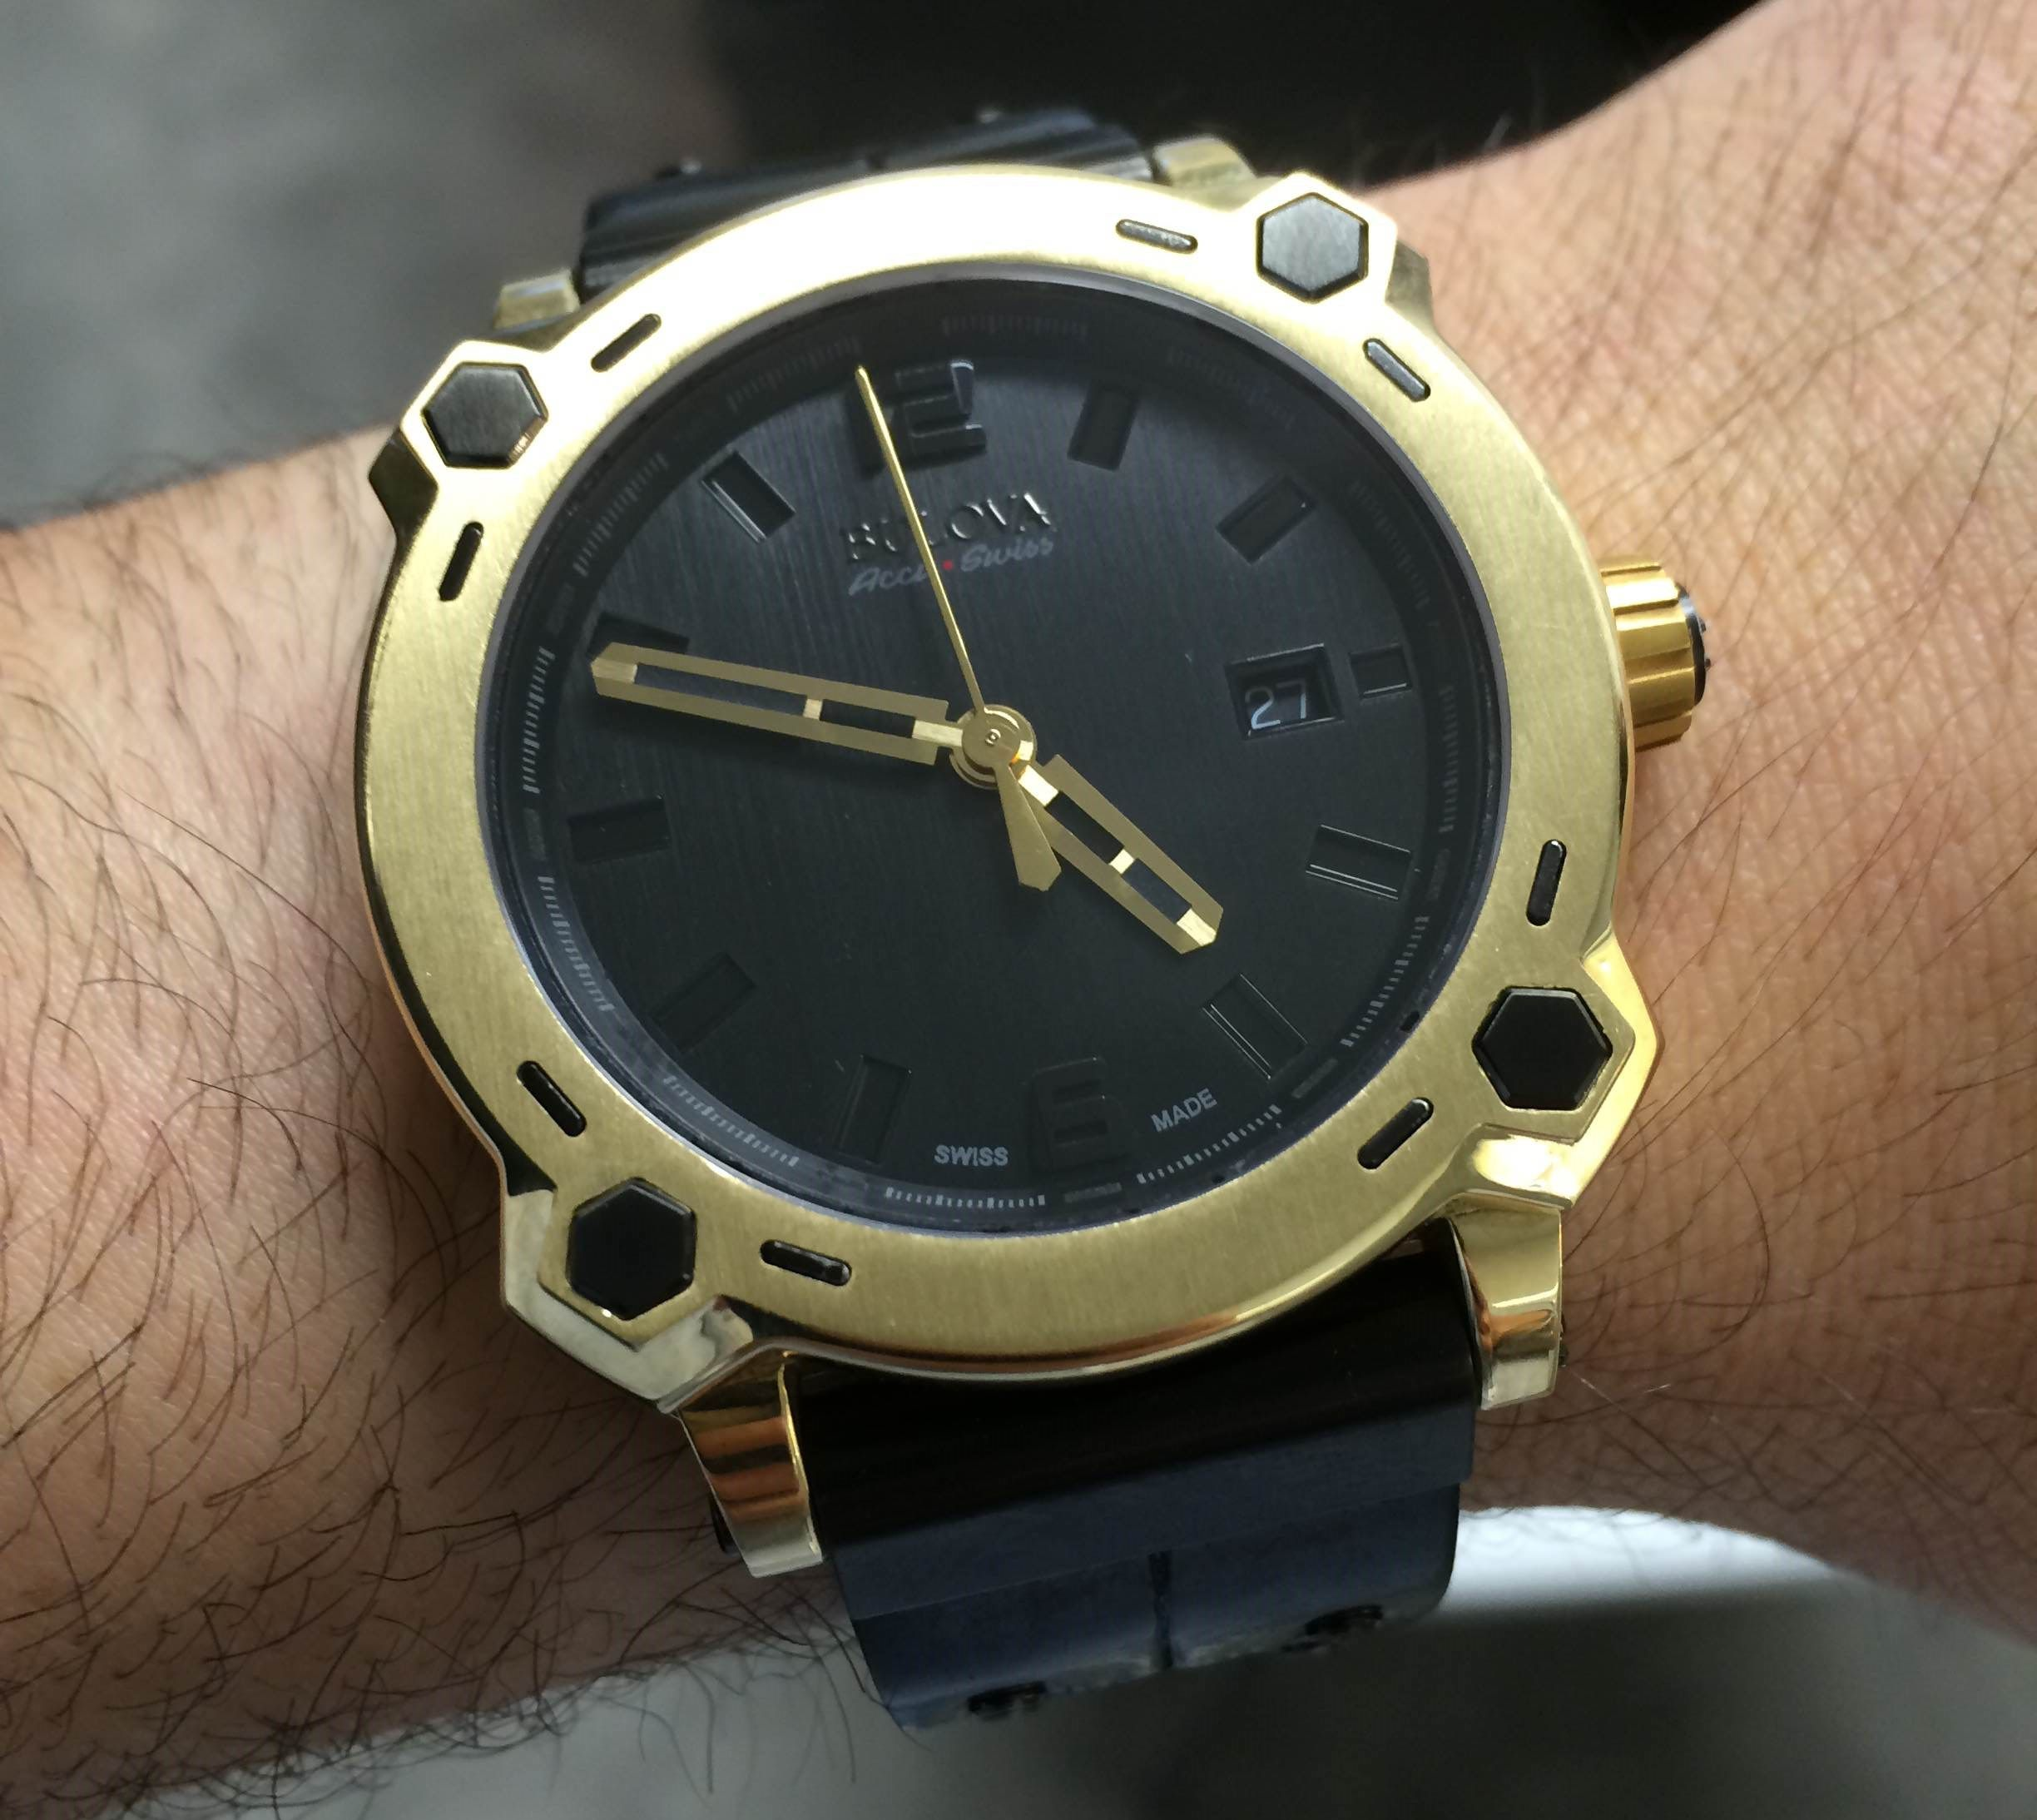 Baselworld 2014: Bulova Percheron On The Wrist - the brand's first ever 24k gold watch uses forged gold. 40mm wide, $40k - See more Bulova watches and keep up with our Baselworld 2014 odyssey on aBlogtoWatch.com - And don't forget to follow the flood of #ABTWBaselworld2014 photos and info on your favorite social media